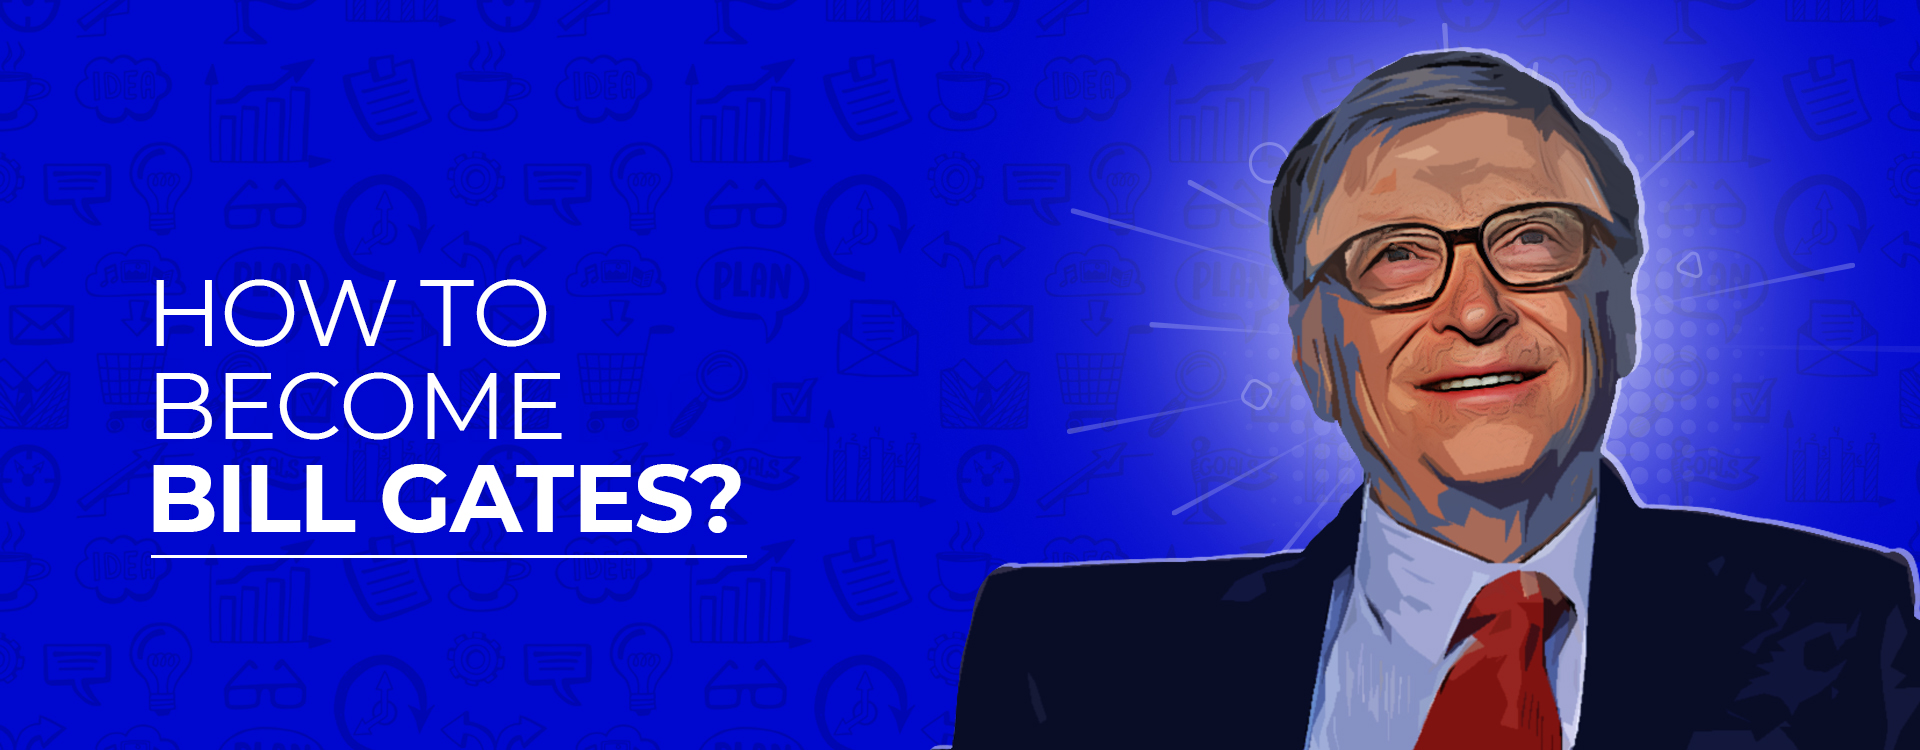 Microsoft founder Bill Gates is an inspiration to many